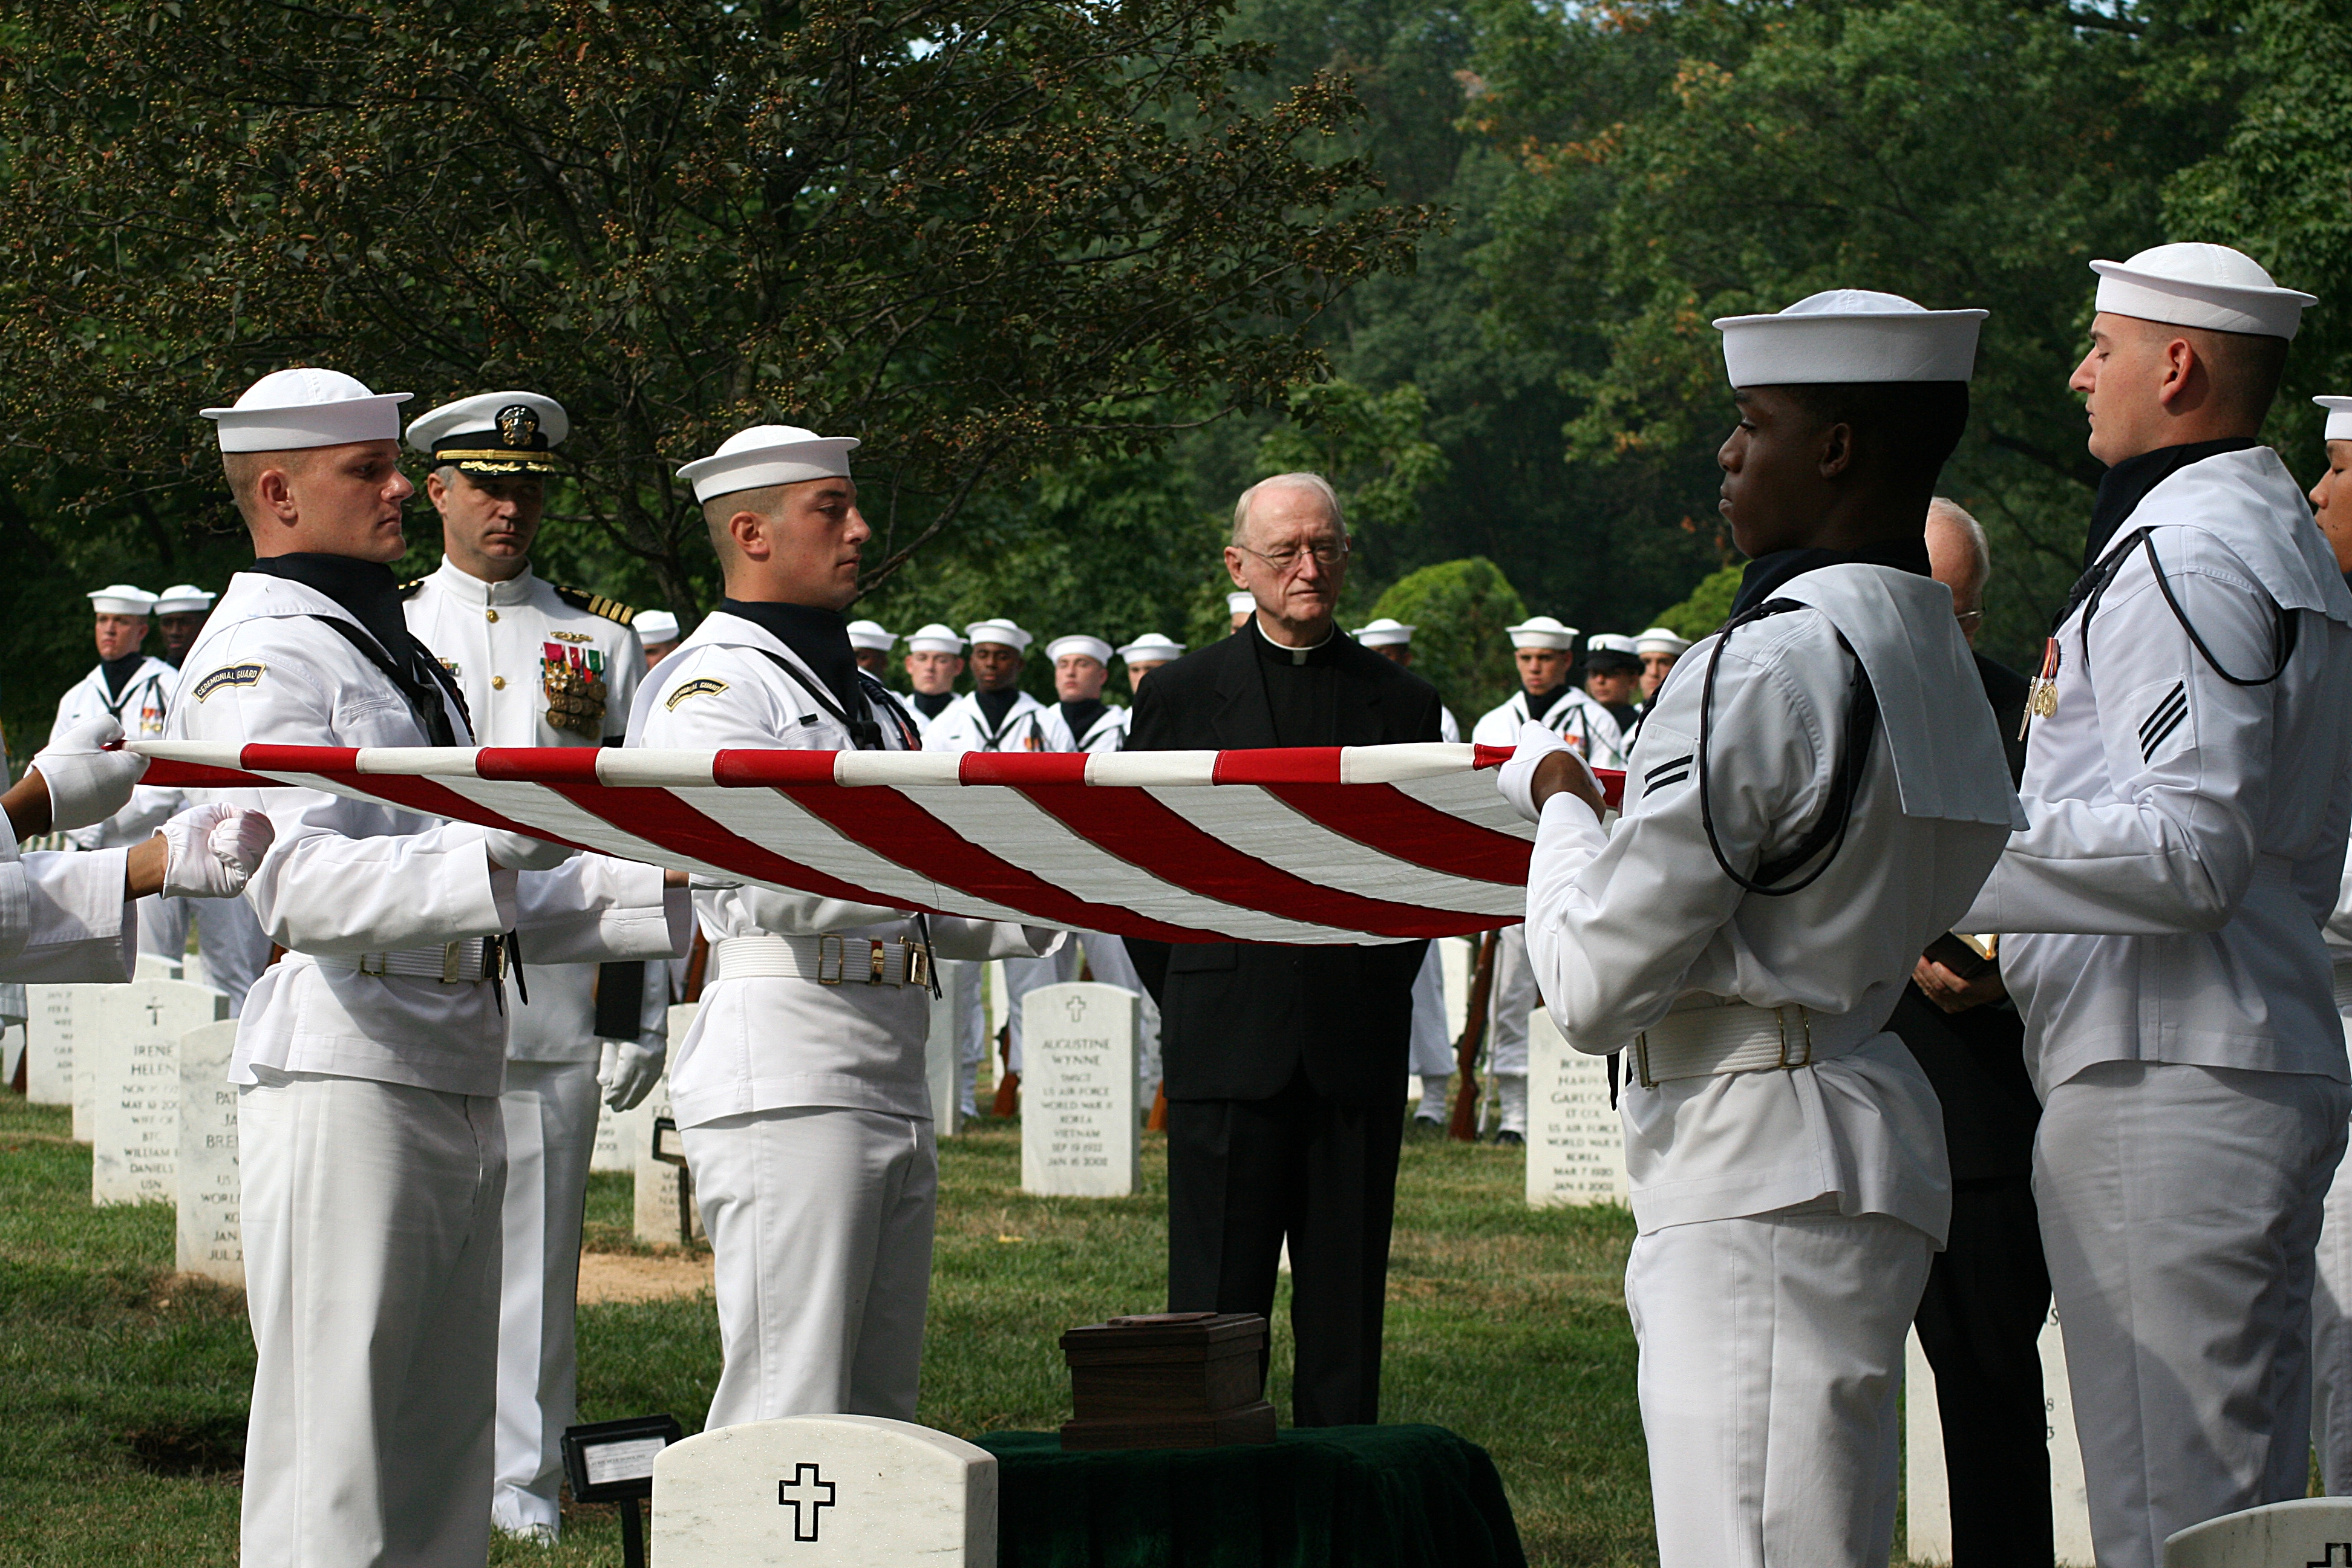 Don't You Dare Miss This Video Of The U.S. Navy Ceremonial Guard At Arlington Cemetery Honoring Our Fallen Featured